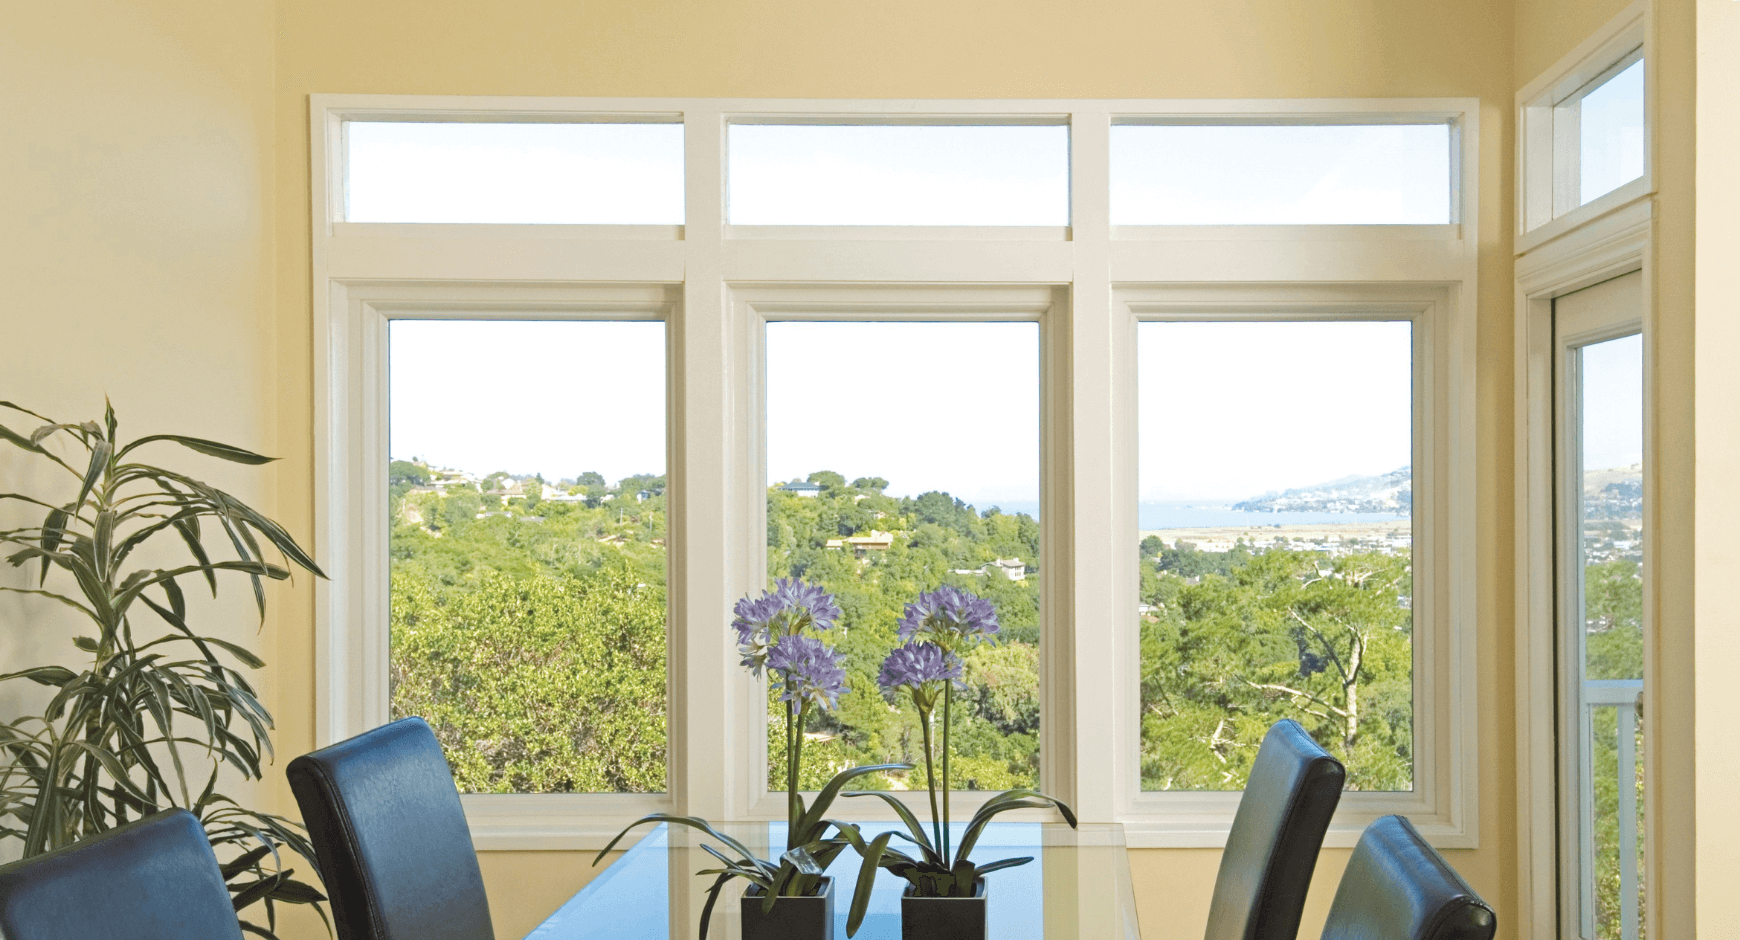 Image of a composite window